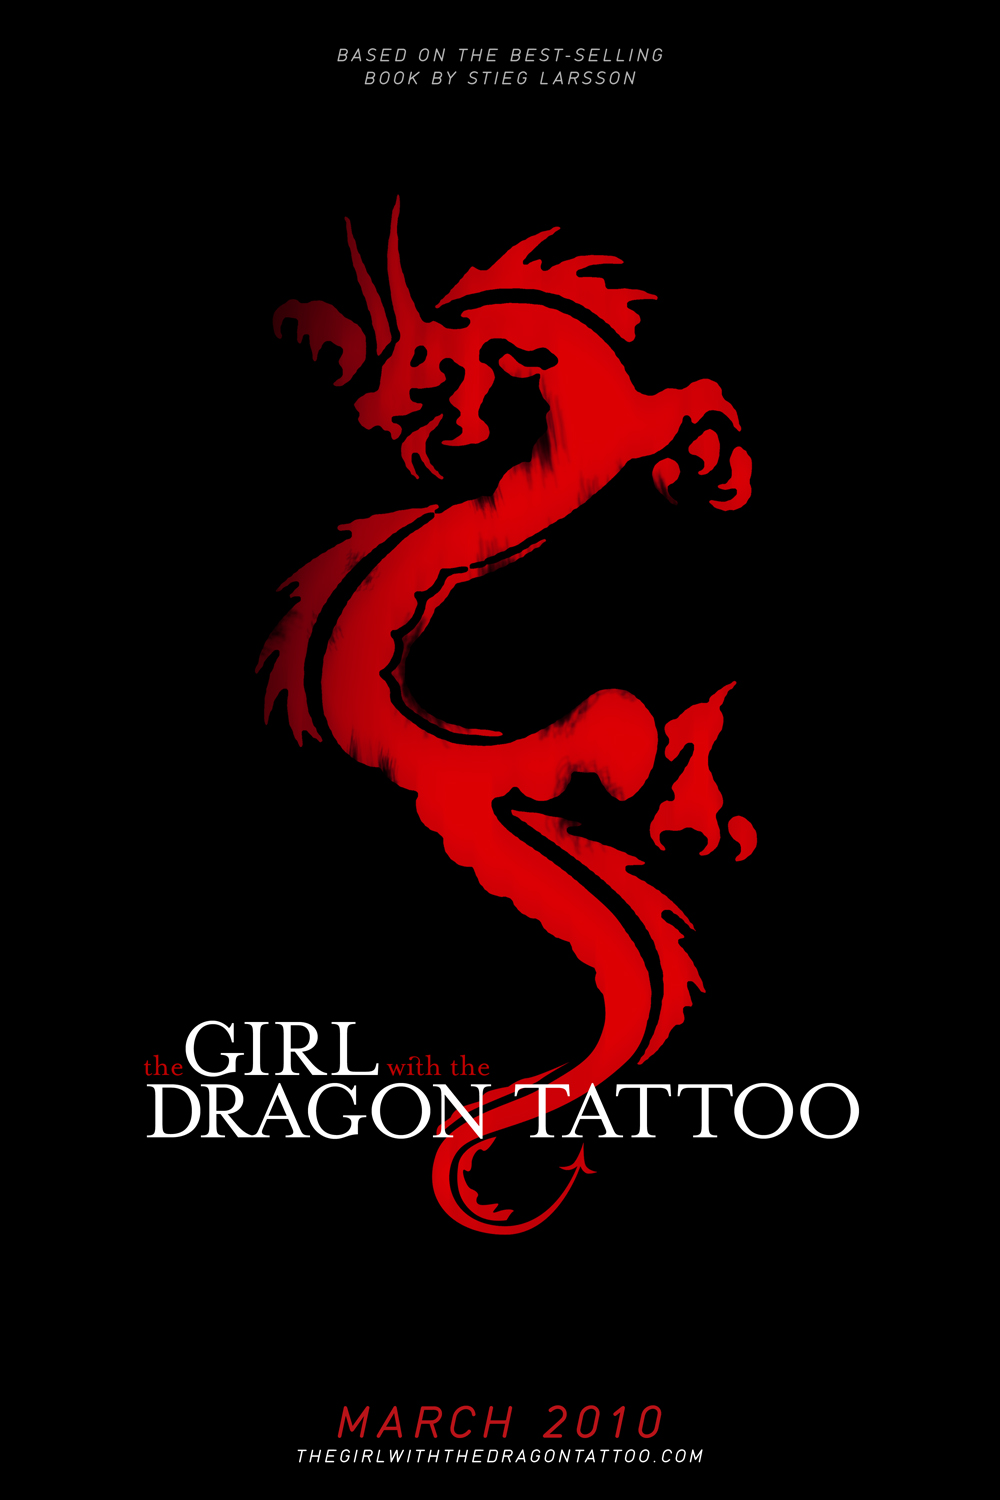 Dragon tattoos for men and women